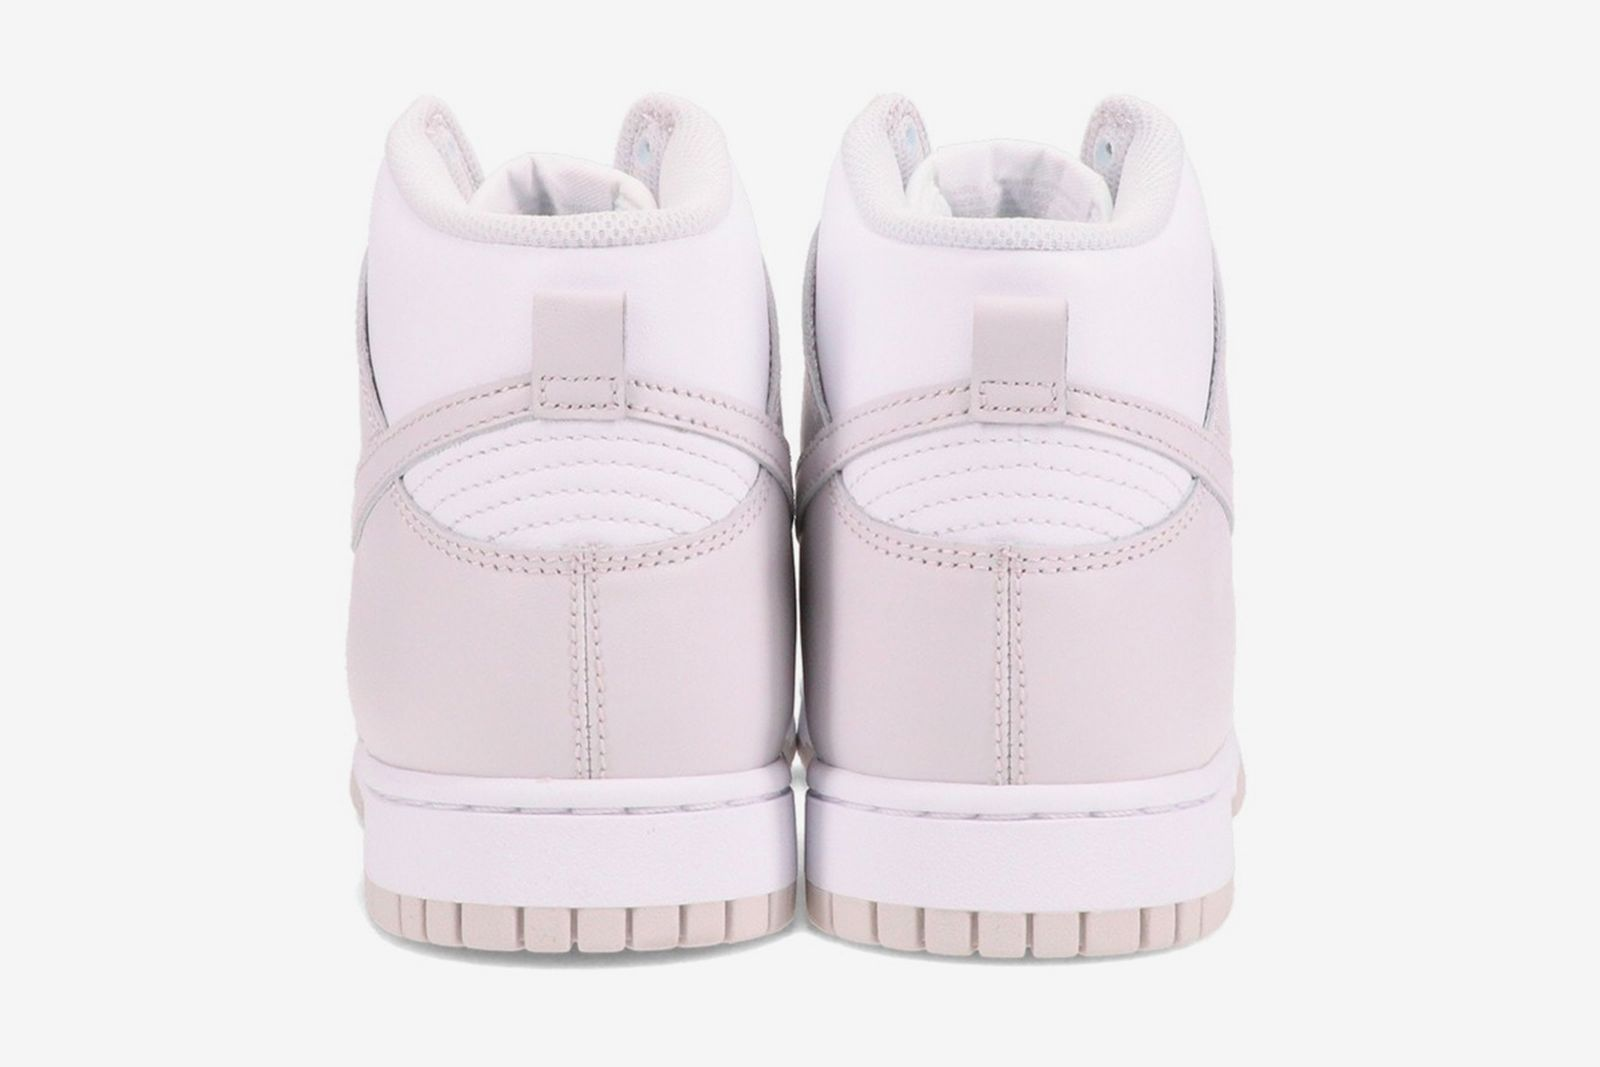 nike-dunks-january-2021-release-date-price-19